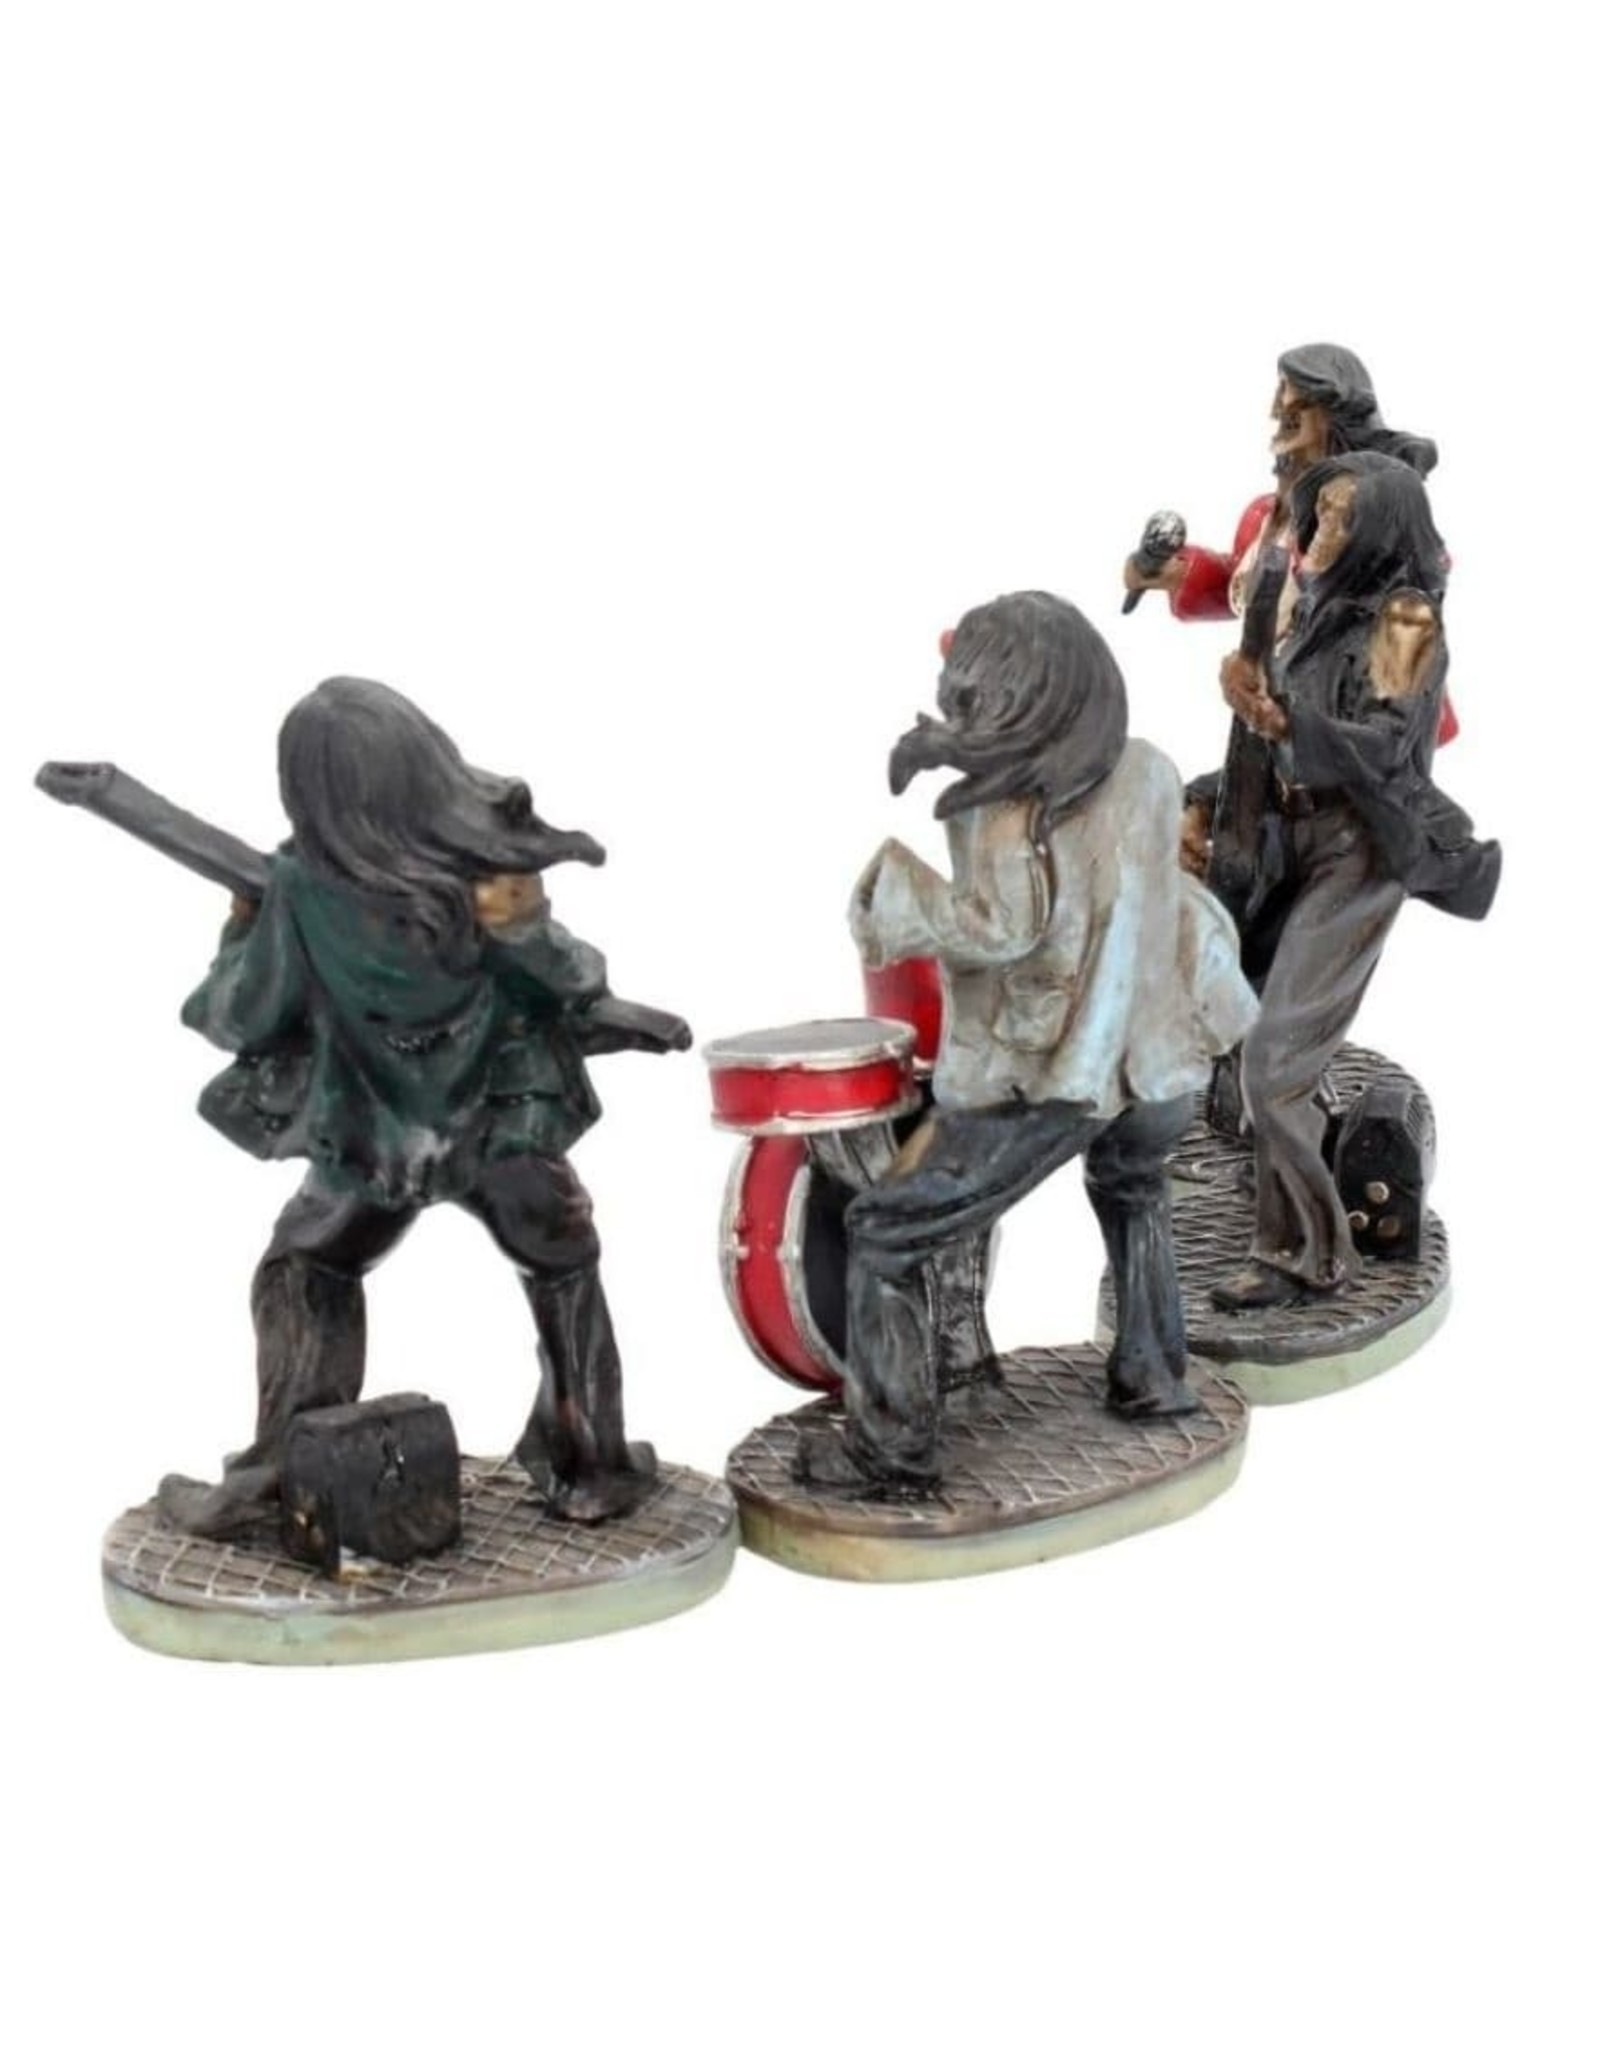 Nemesis Now Collectables - One Hell of a Band - Rock band set of 4 figurines Nemesis Now